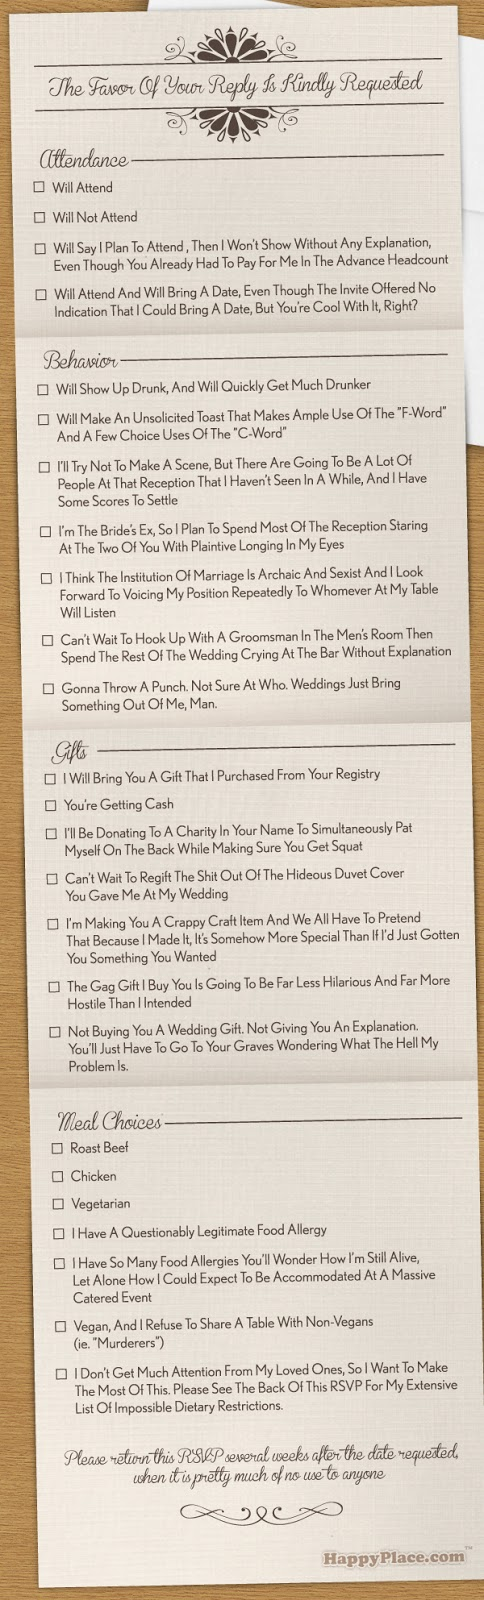 http://www.happyplace.com/16704/the-most-comprehensively-honest-wedding-rsvp-in-the-history-of-marriage